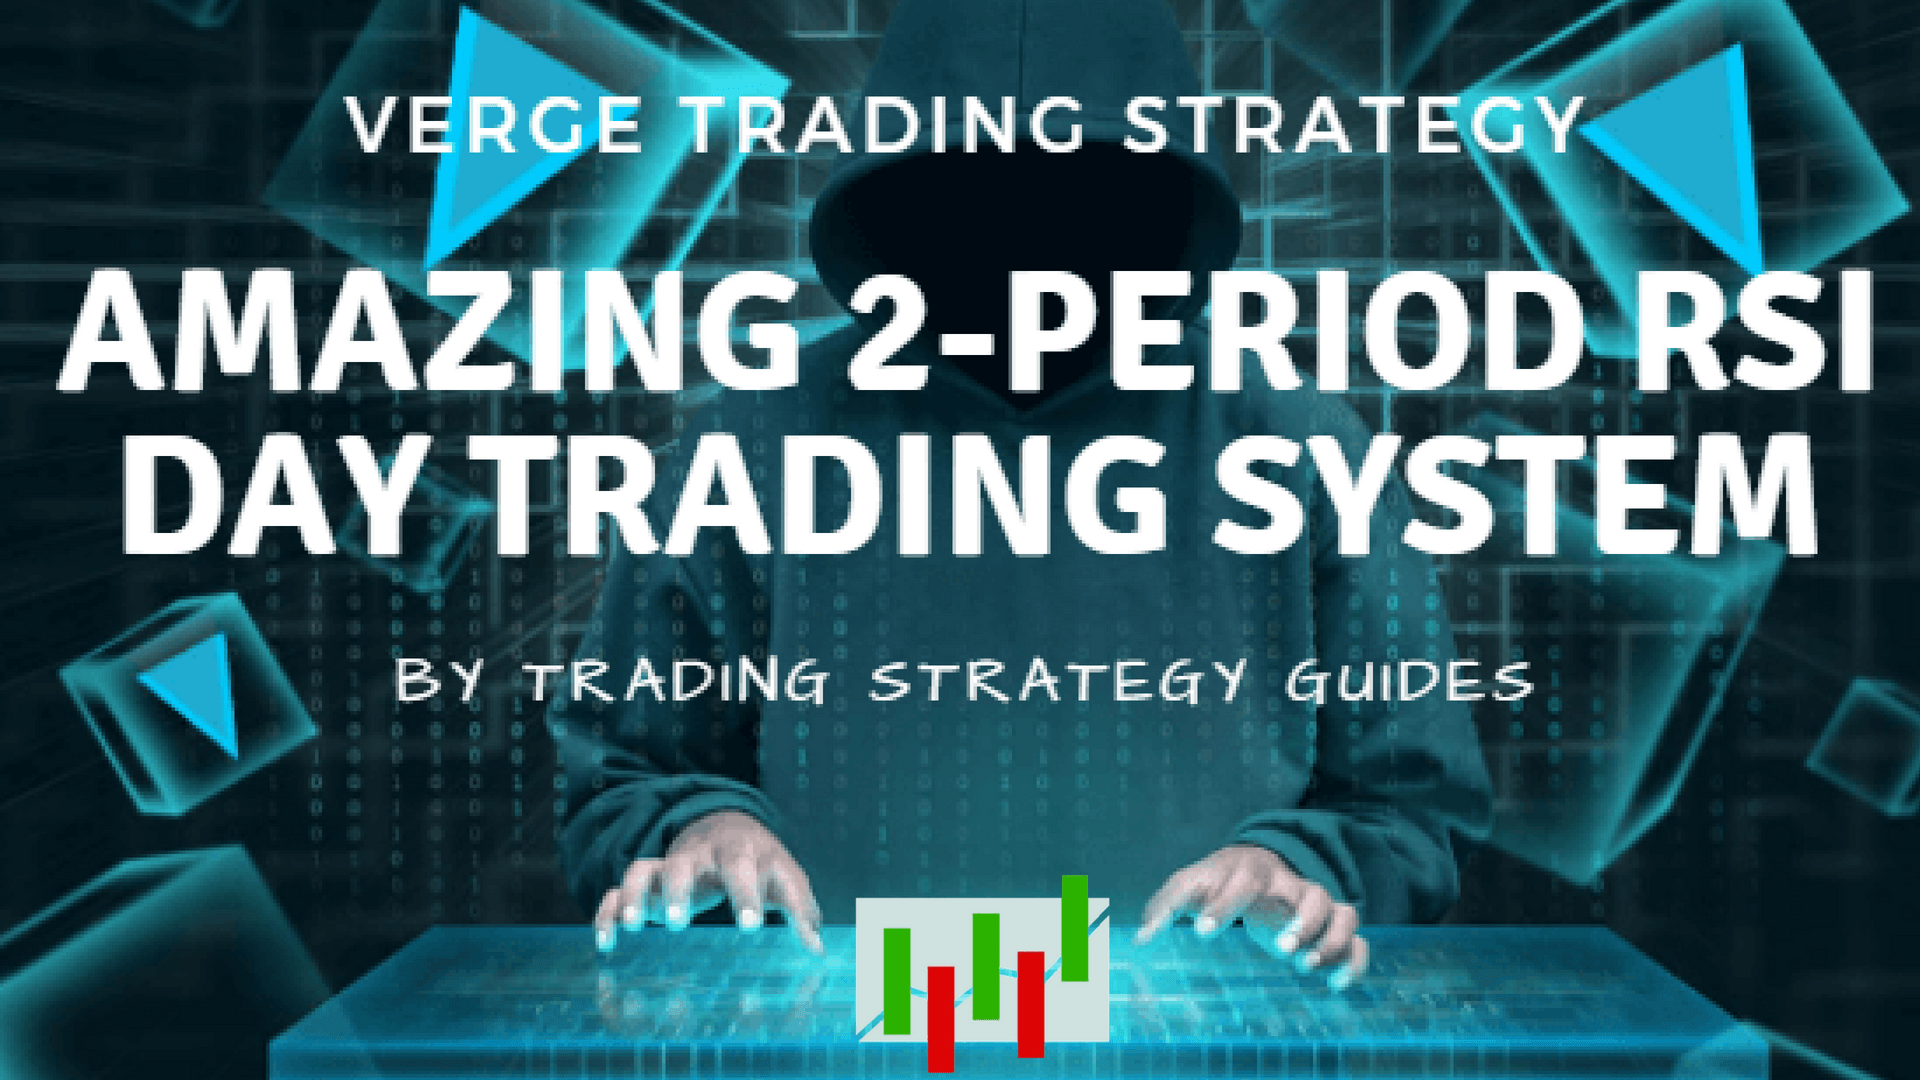 2 period rsi pullback trading strategy pdf